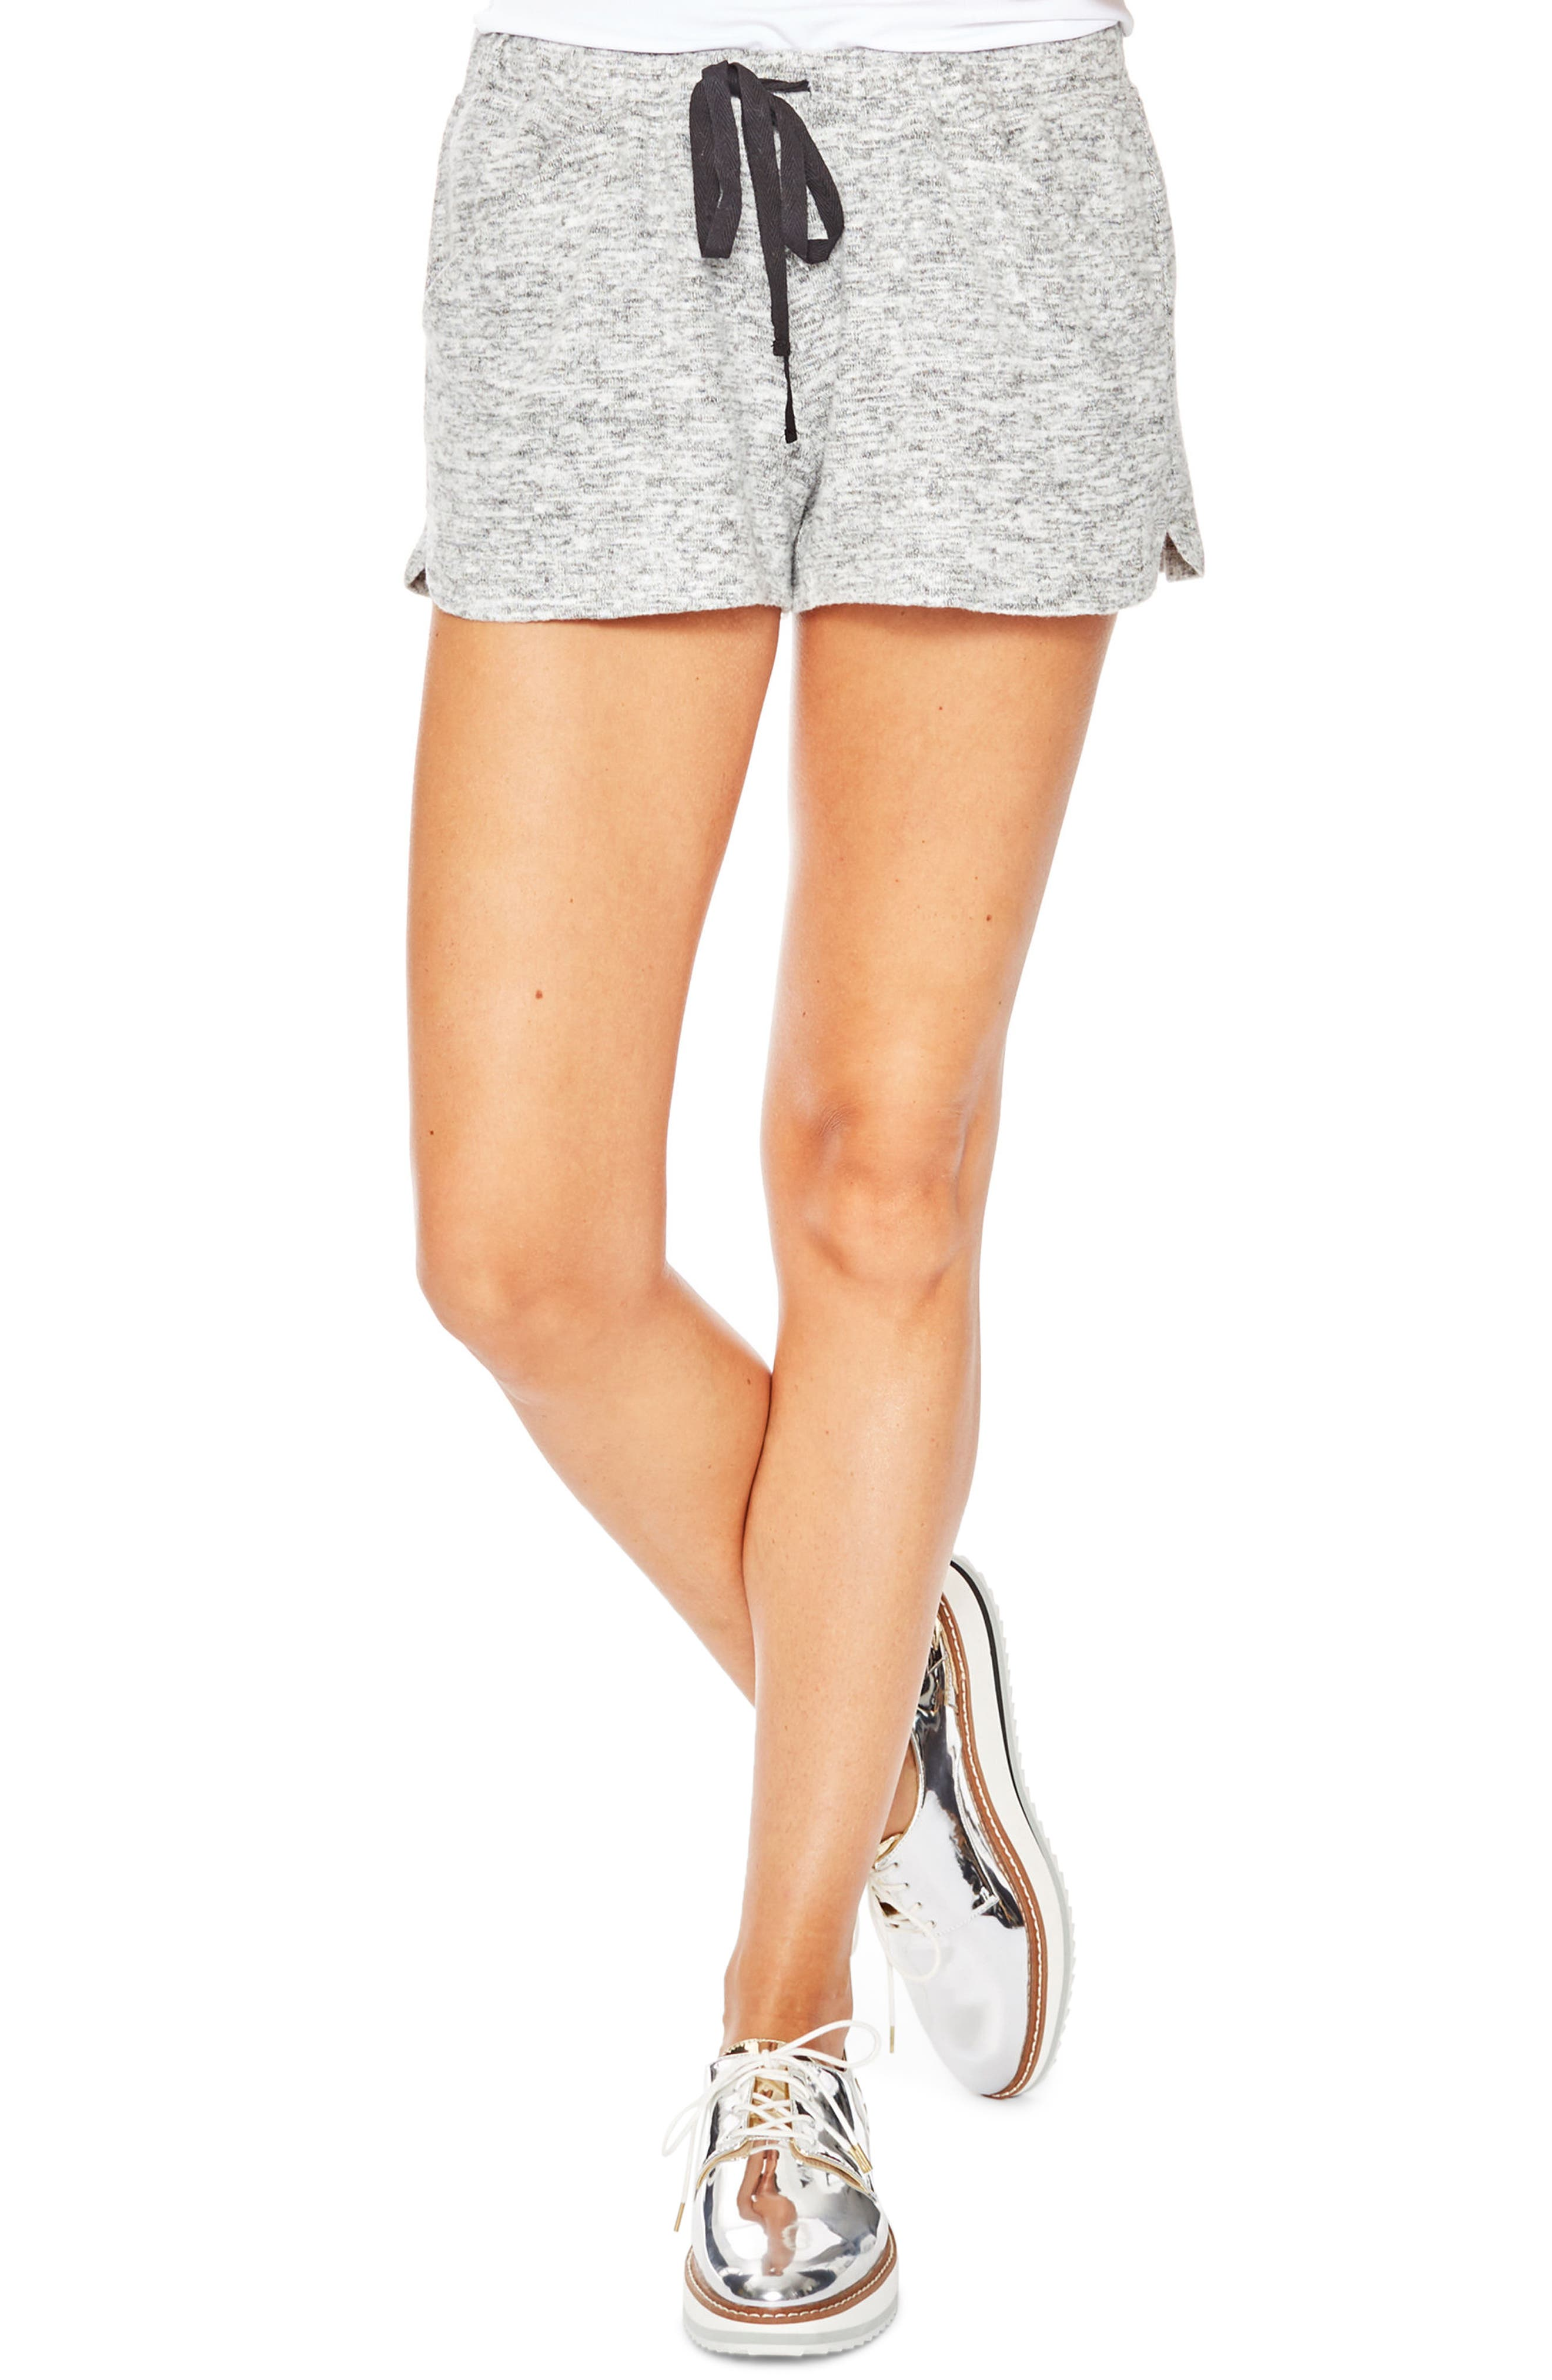 ROSIE POPE ISABEL MATERNITY SHORTS